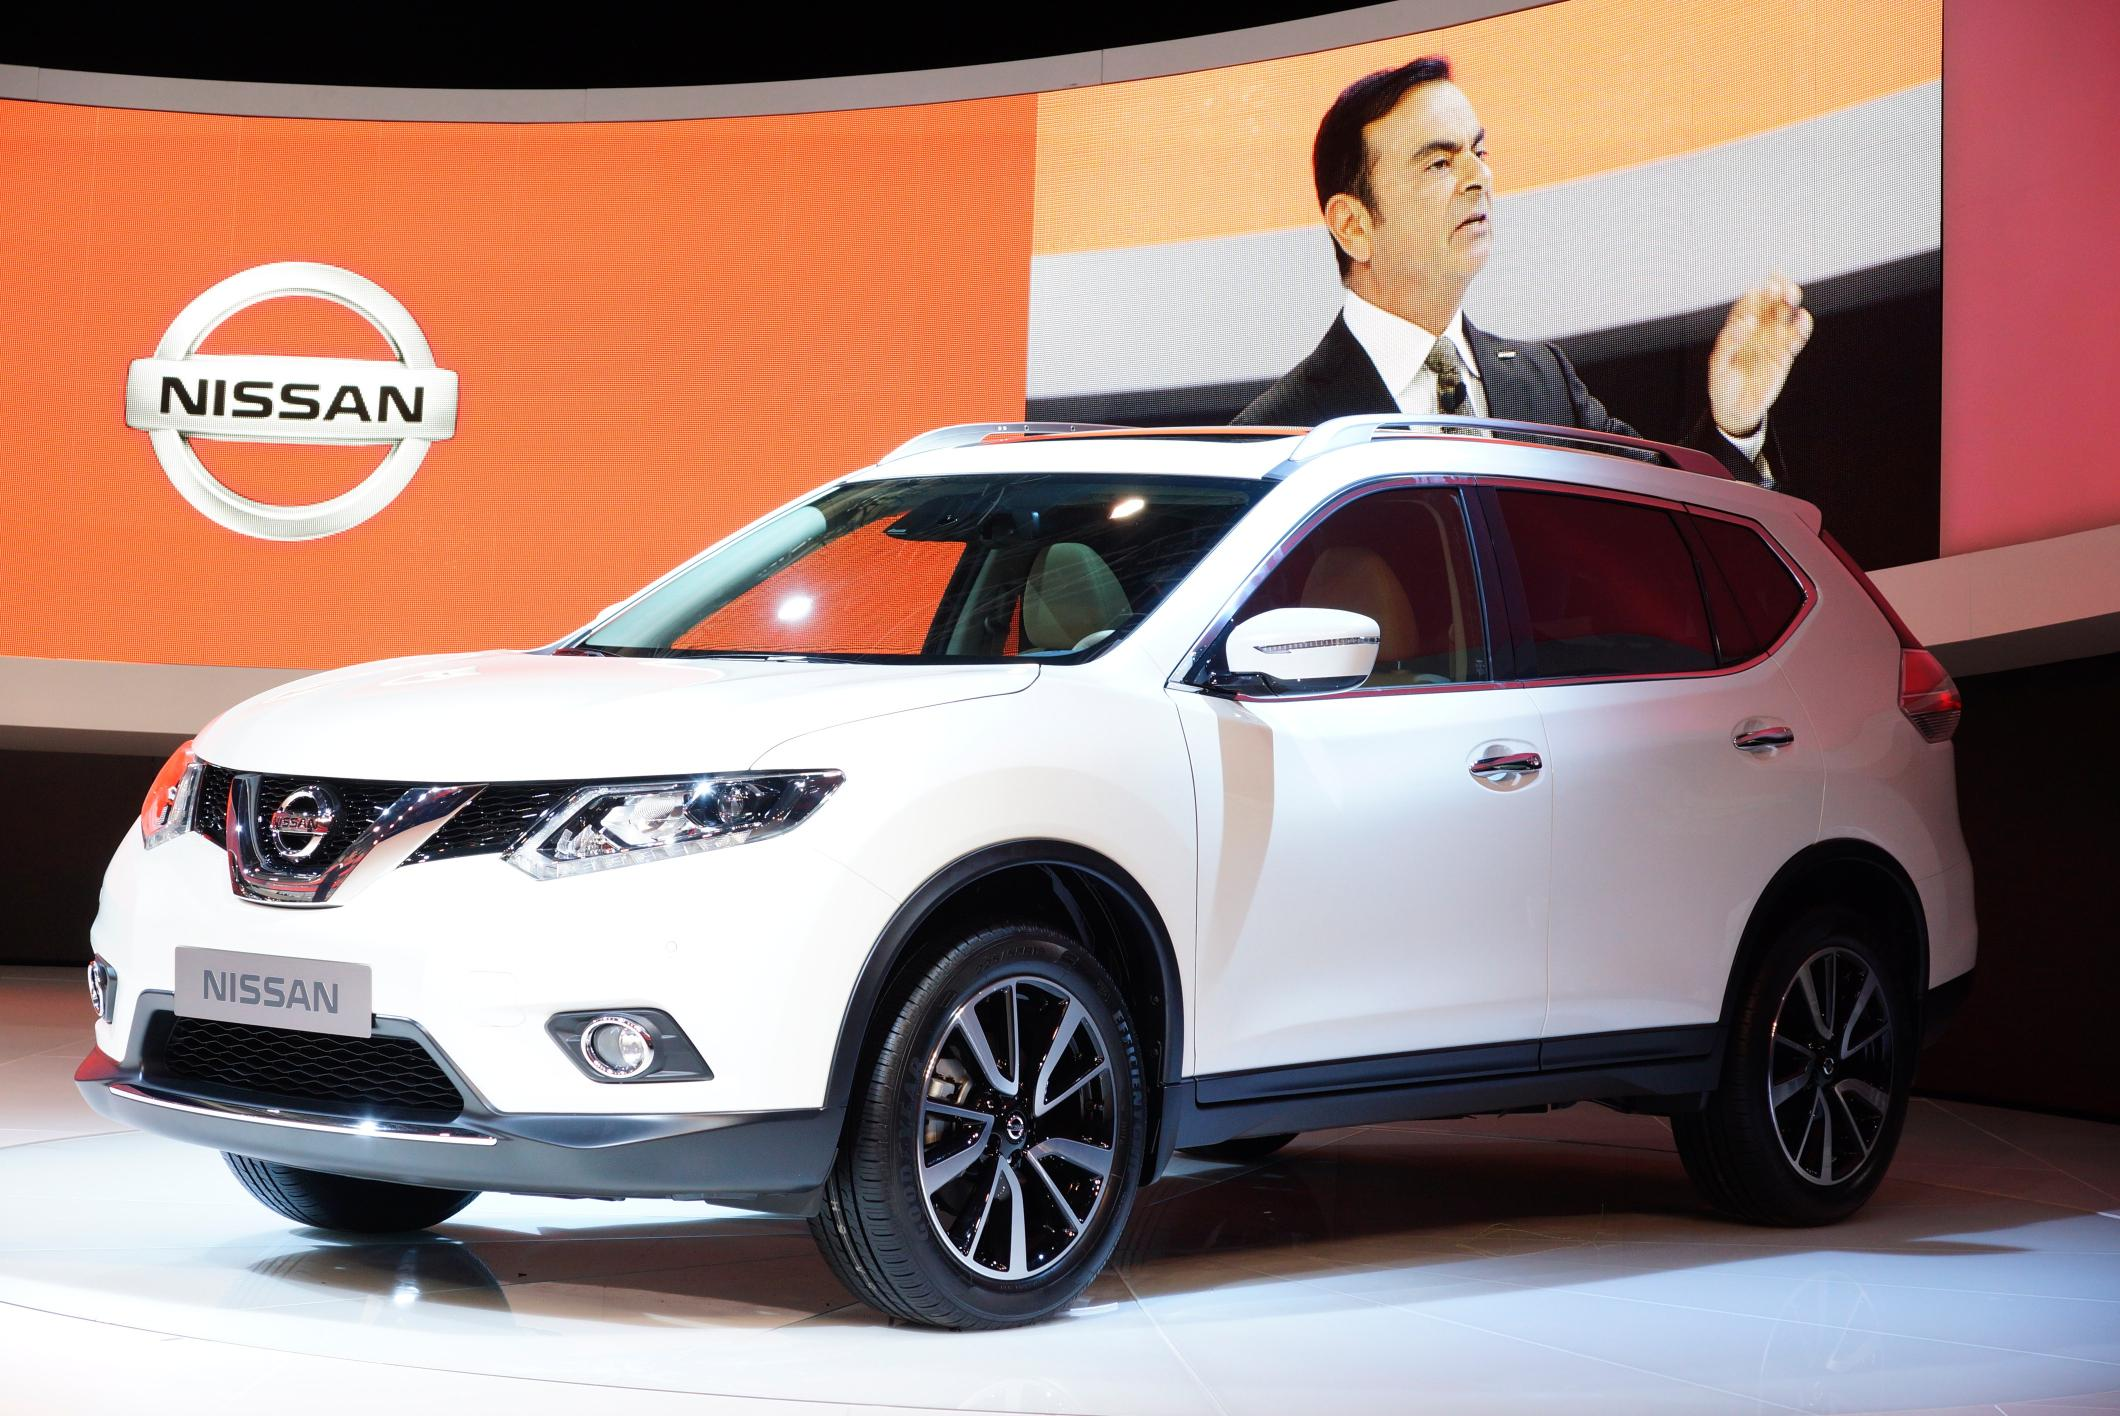 new nissan x trail suv price photos specs india launch. Black Bedroom Furniture Sets. Home Design Ideas